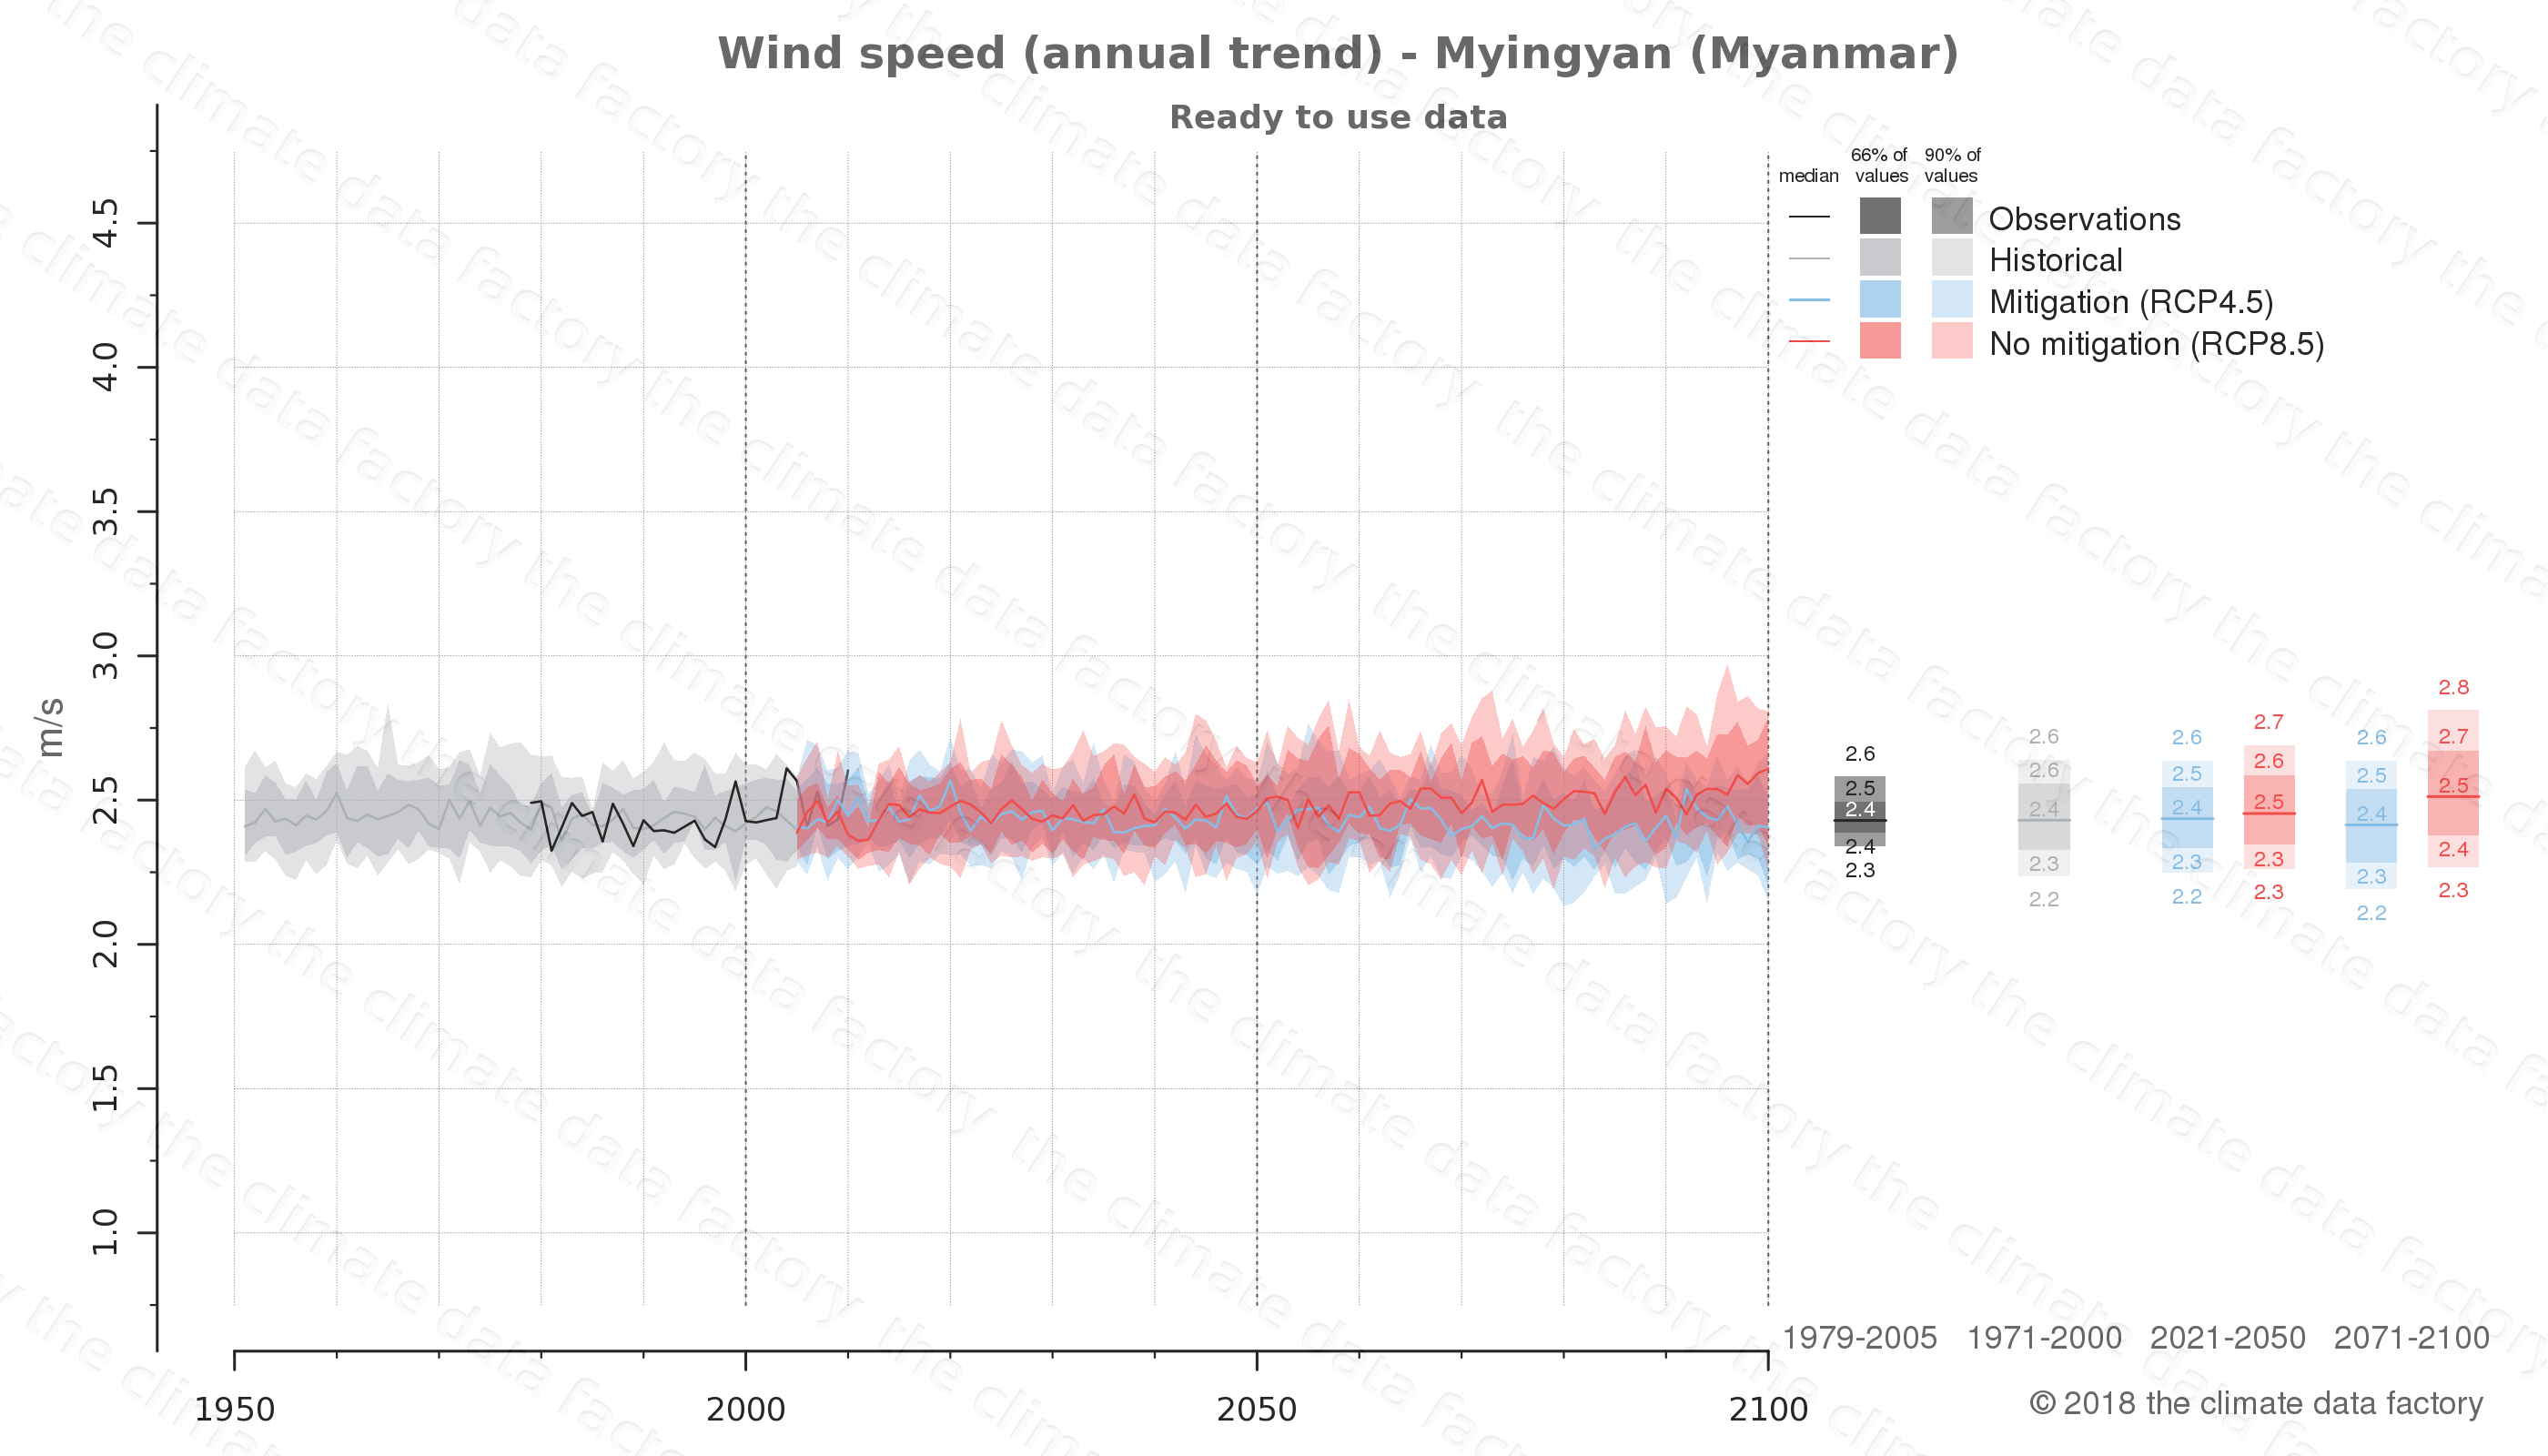 climate change data policy adaptation climate graph city data wind-speed myingyan myanmar